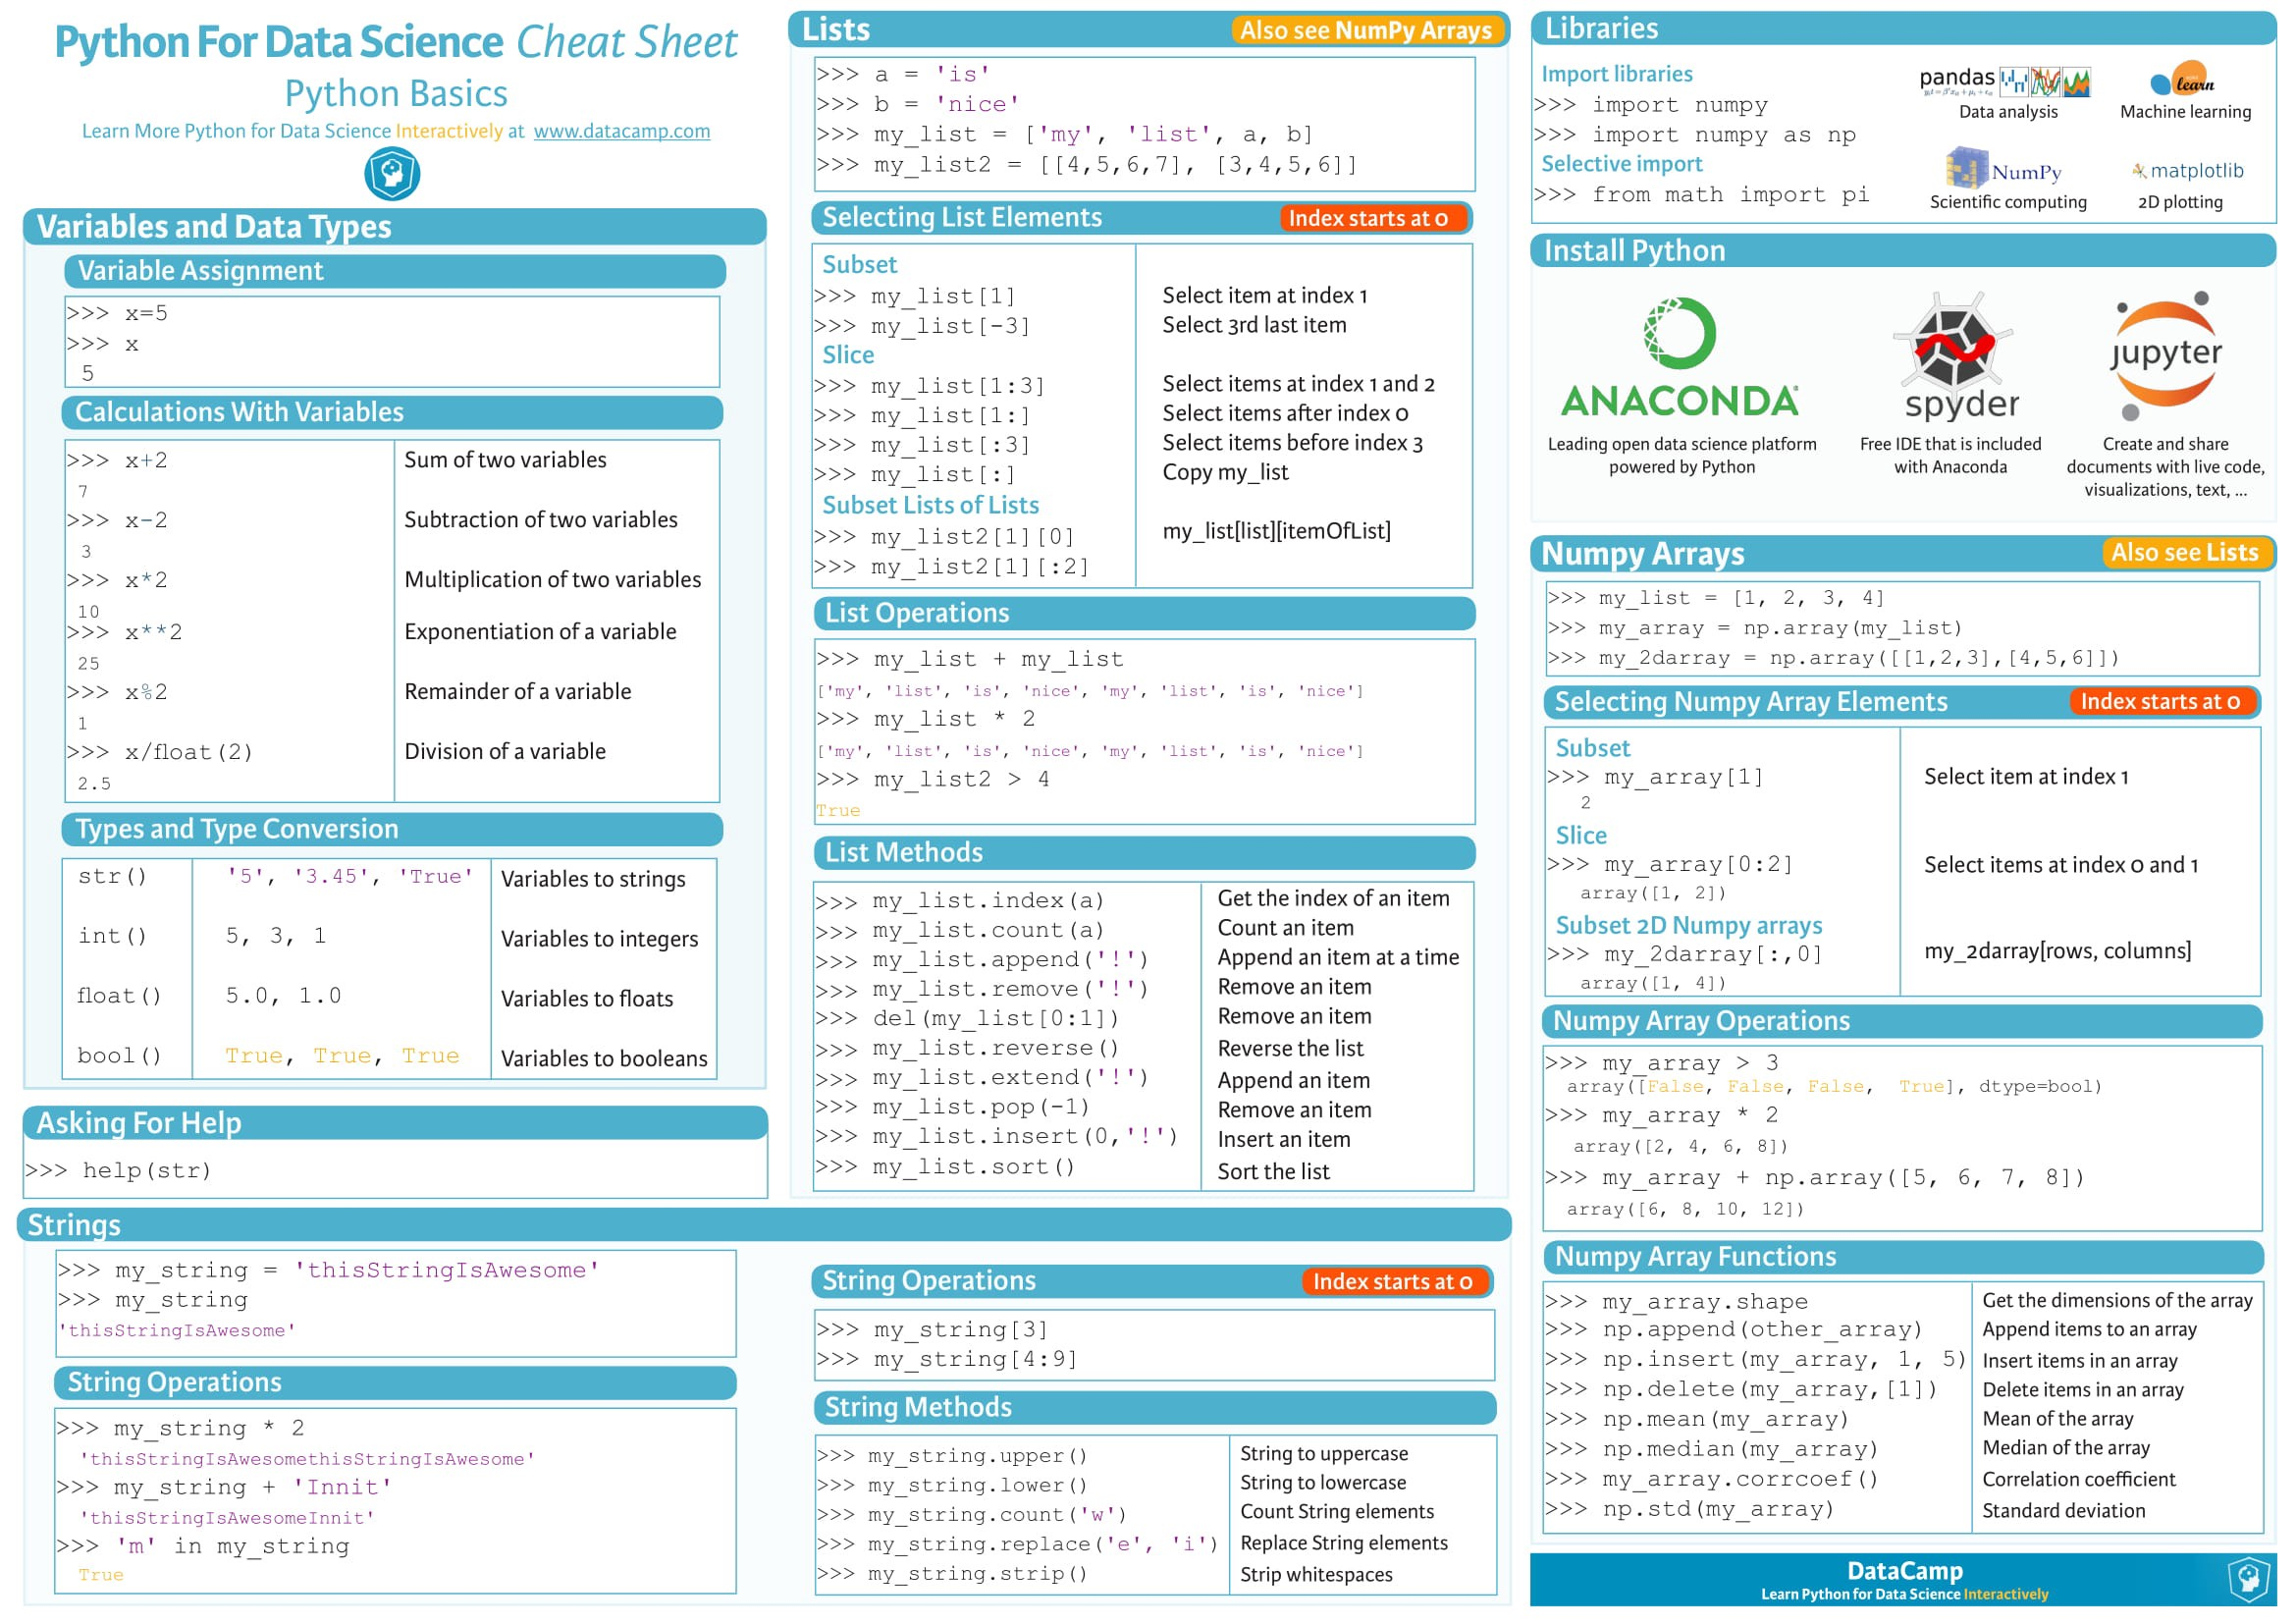 Python 3 Cheat Sheet S Persomsi Pointal